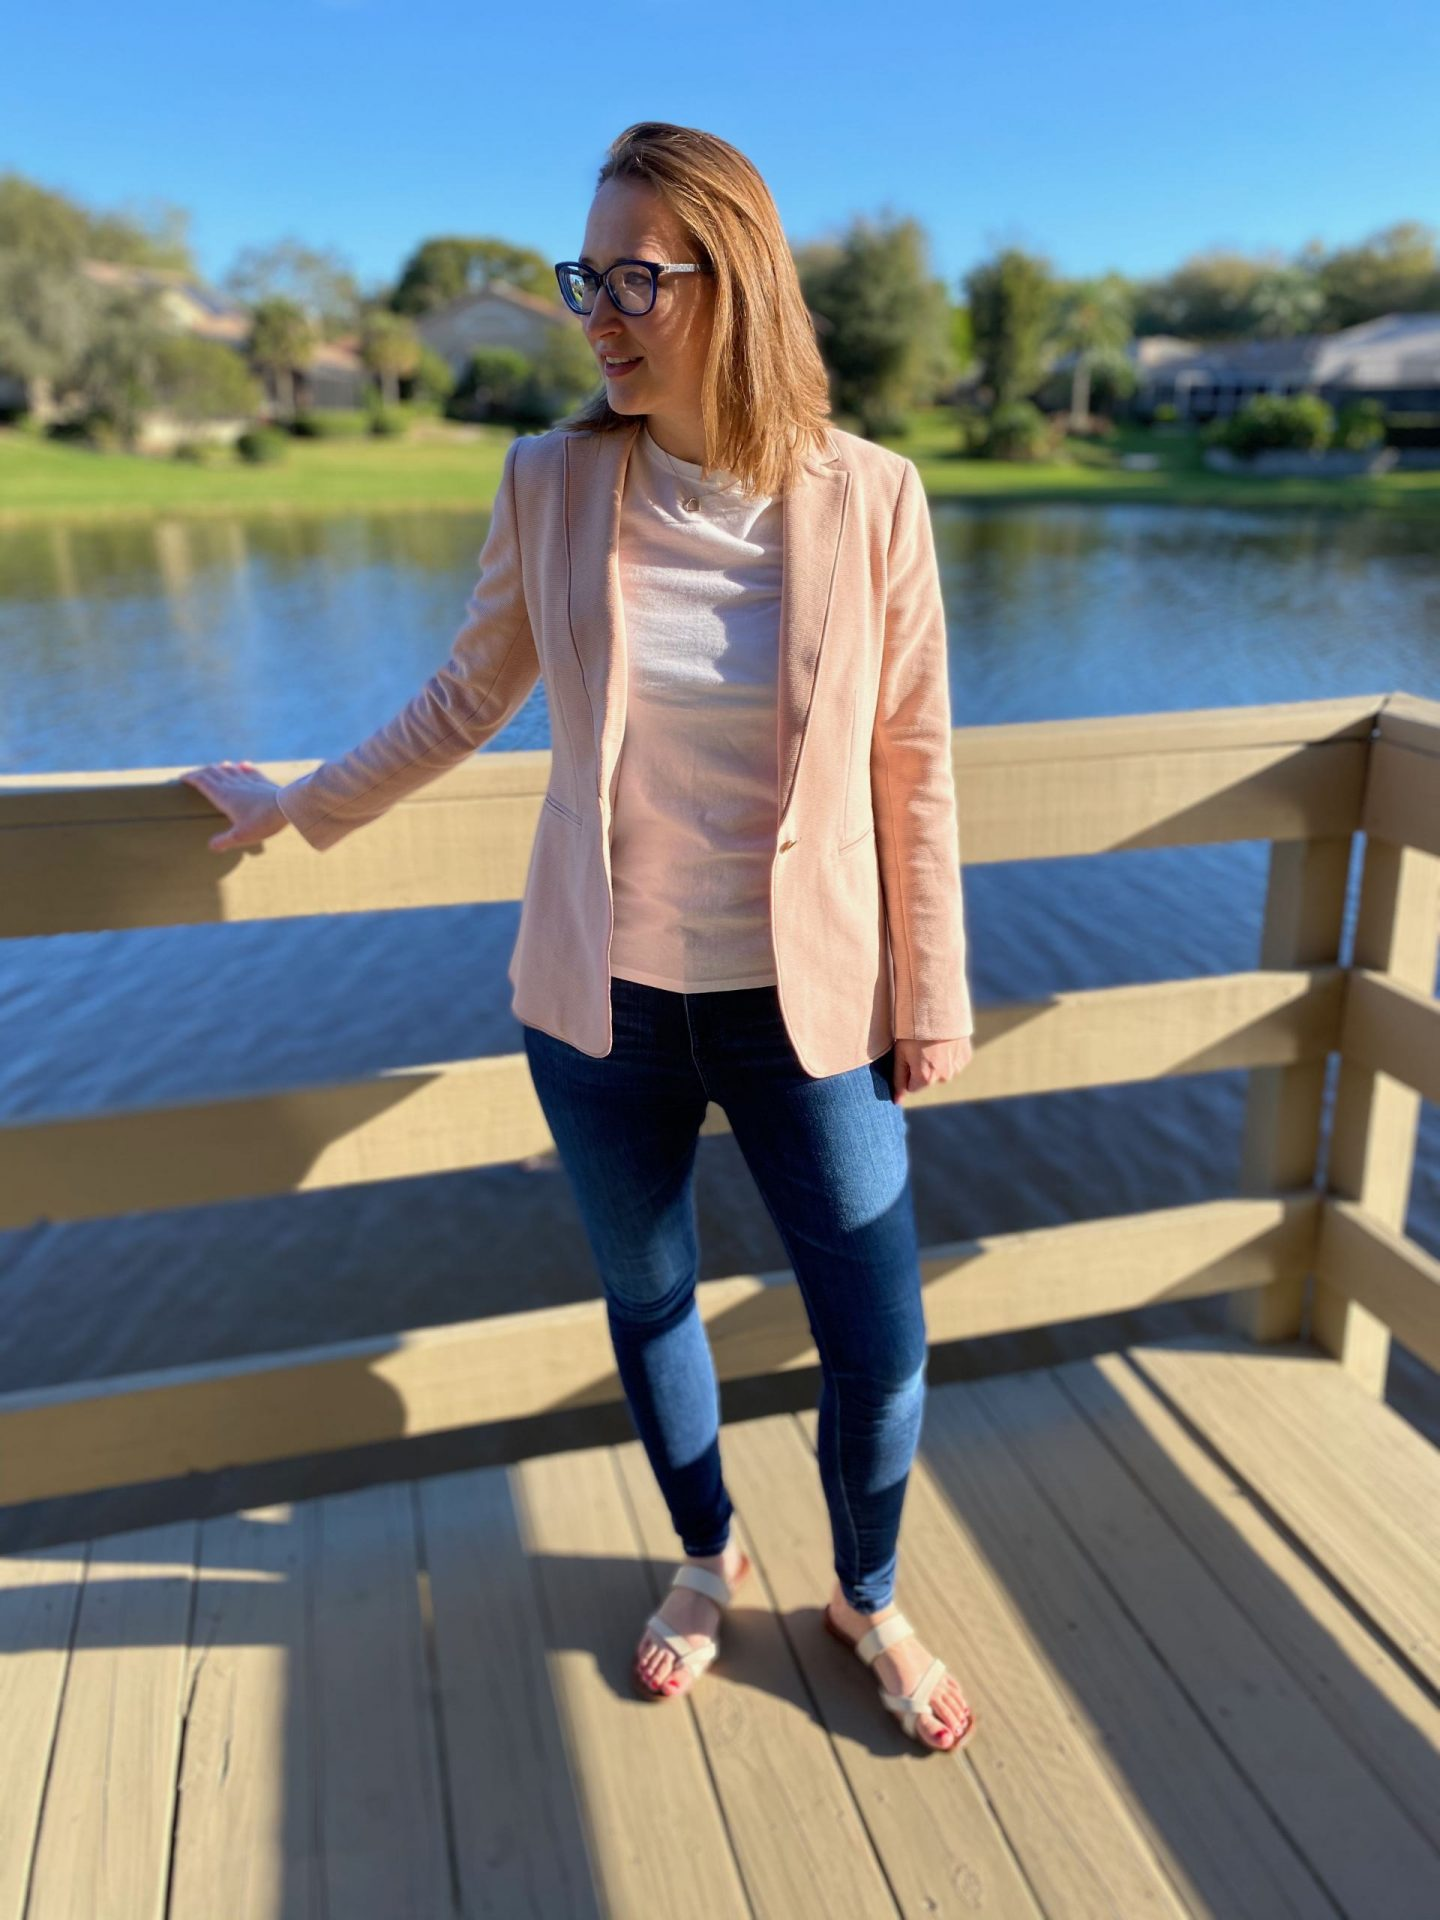 Casual Outfit Ideas for Ann Taylor Spring Blazer | The Spectacular Adventurer